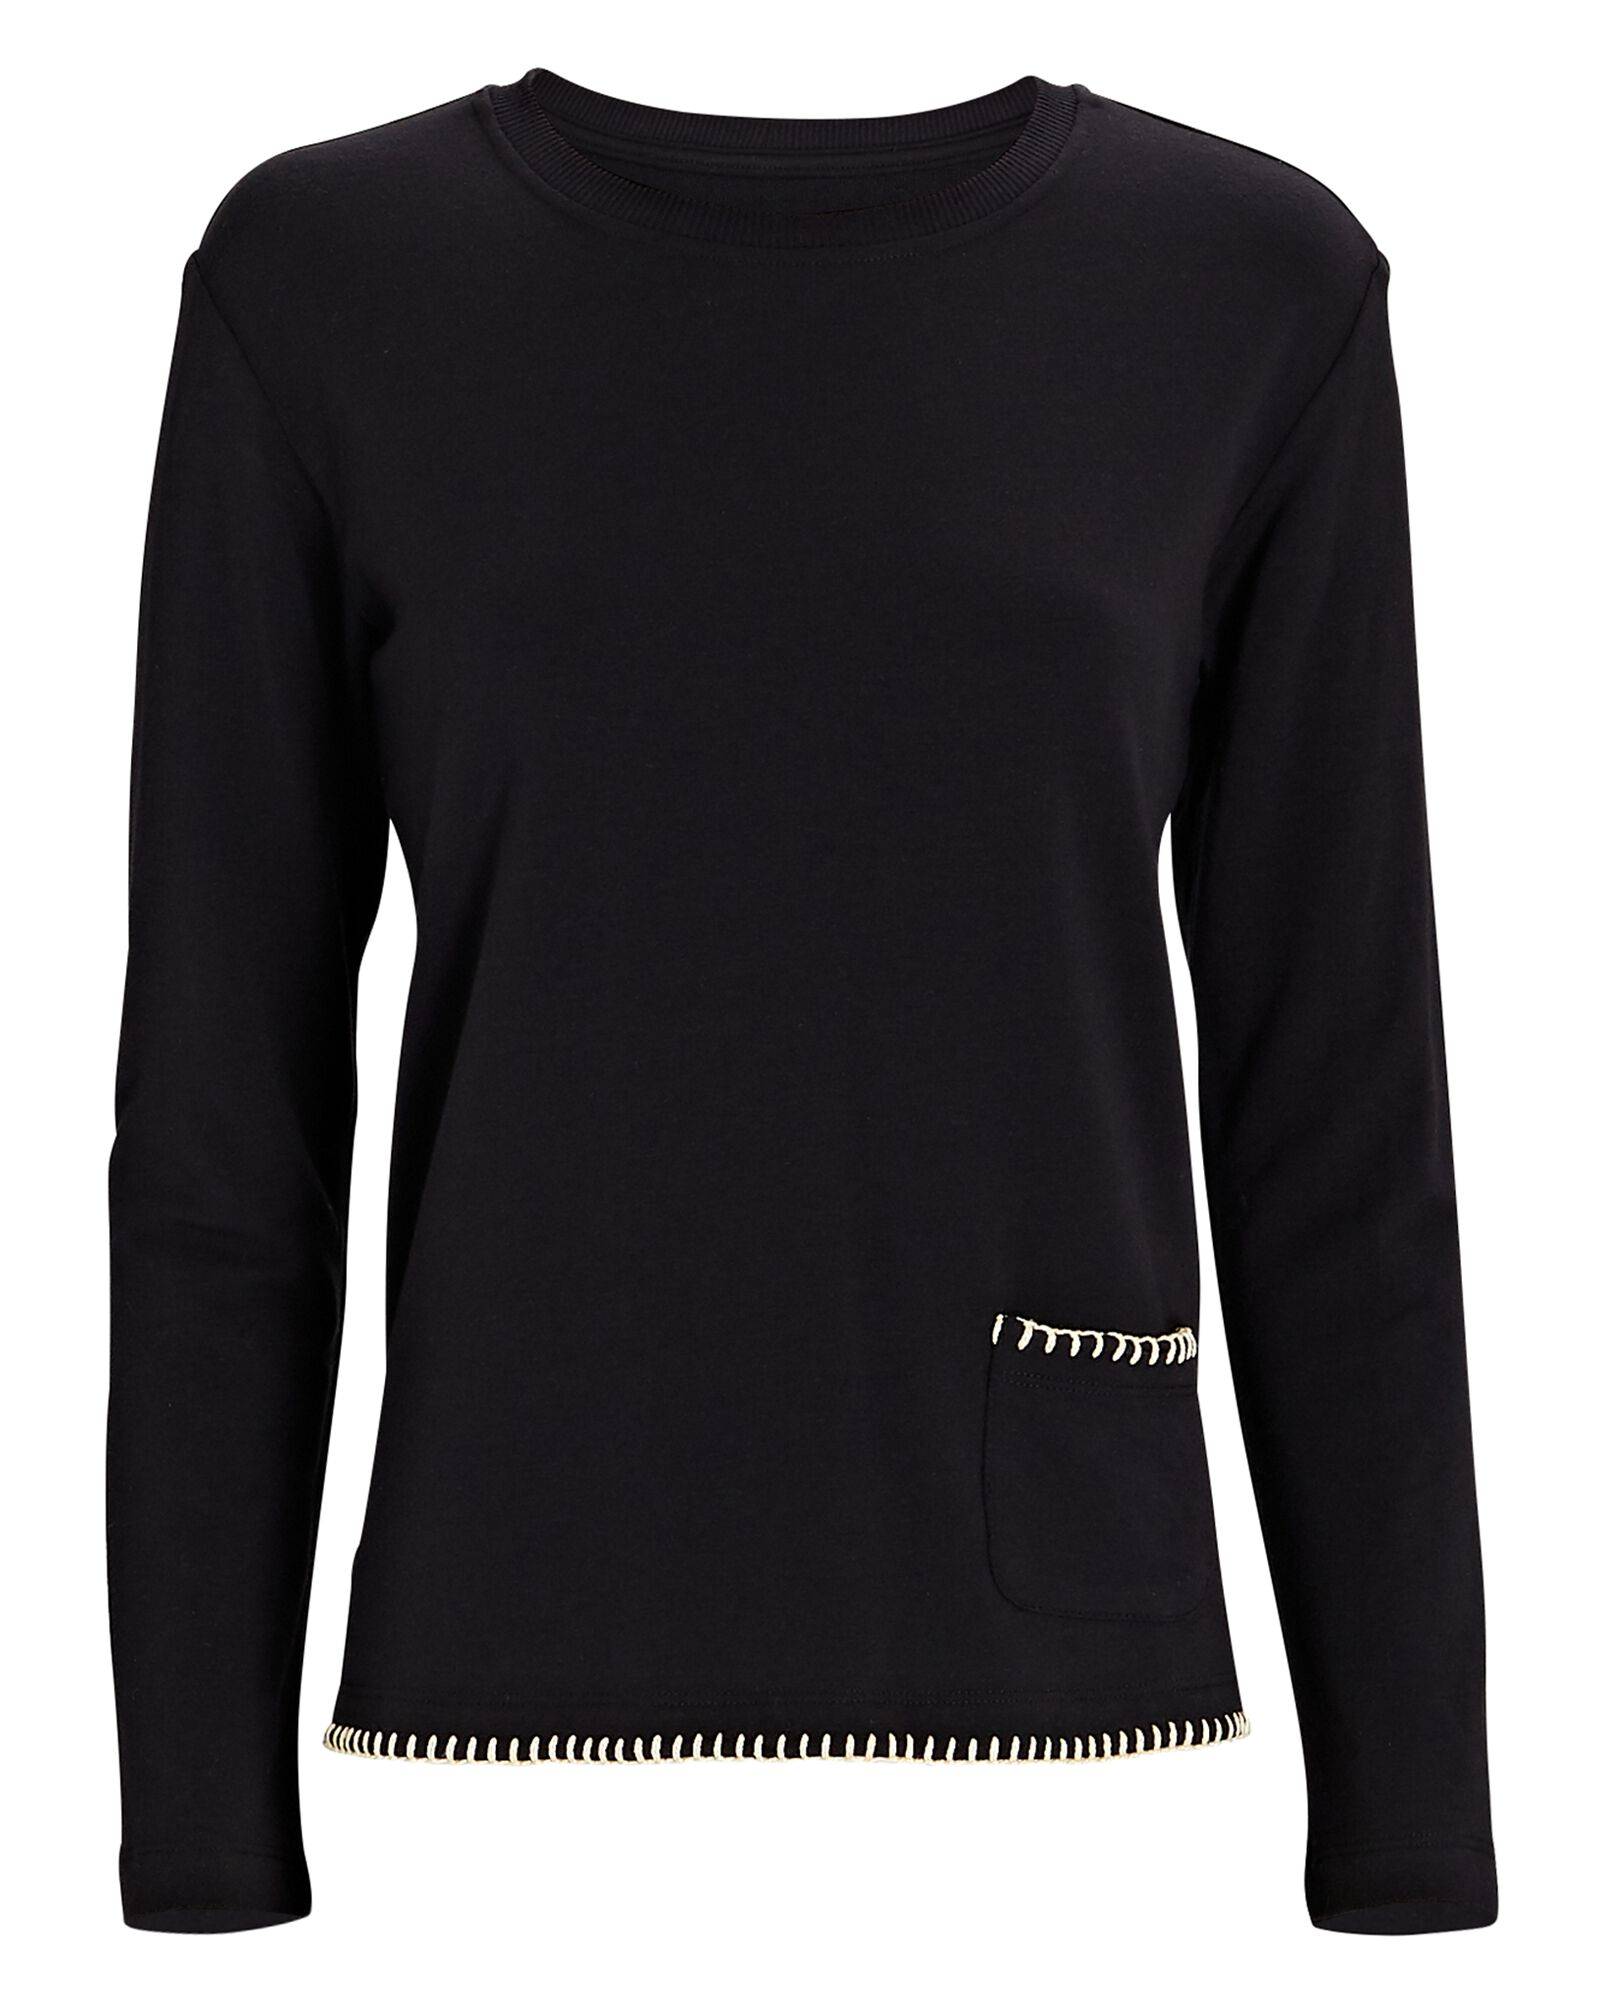 Christy Split Hem Sweatshirt, BLACK, hi-res